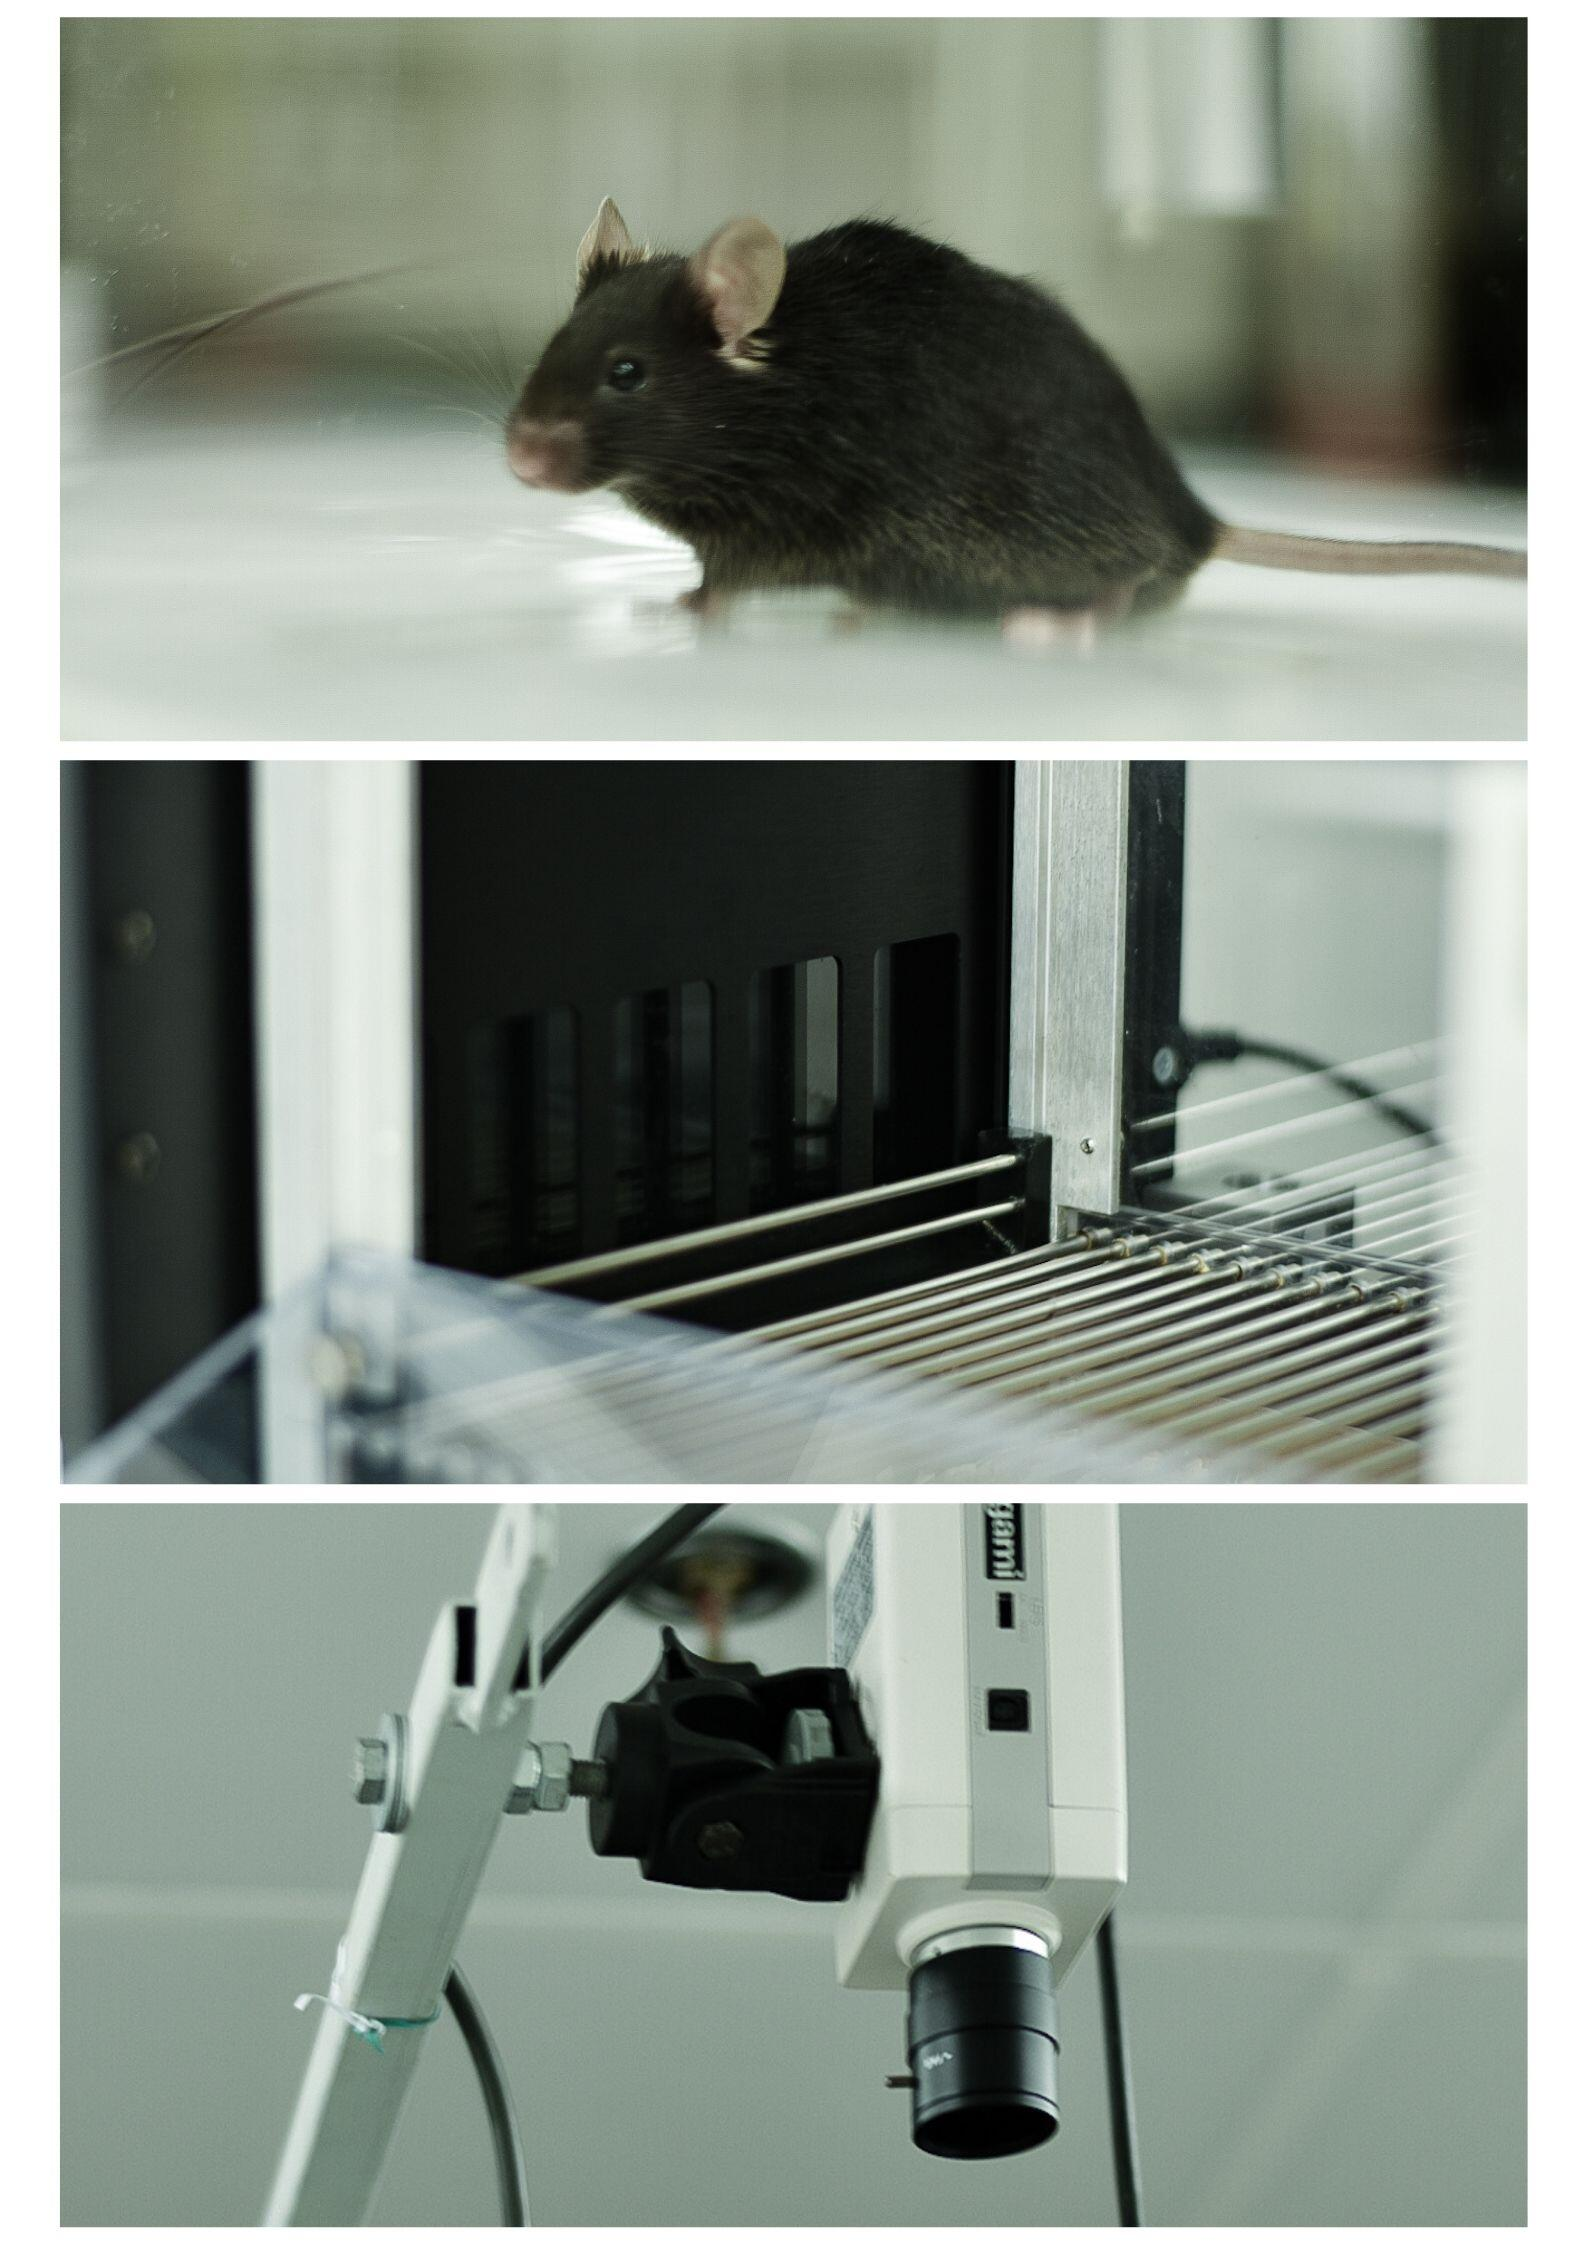 Pictures of the rodent phenotypic facility equipment